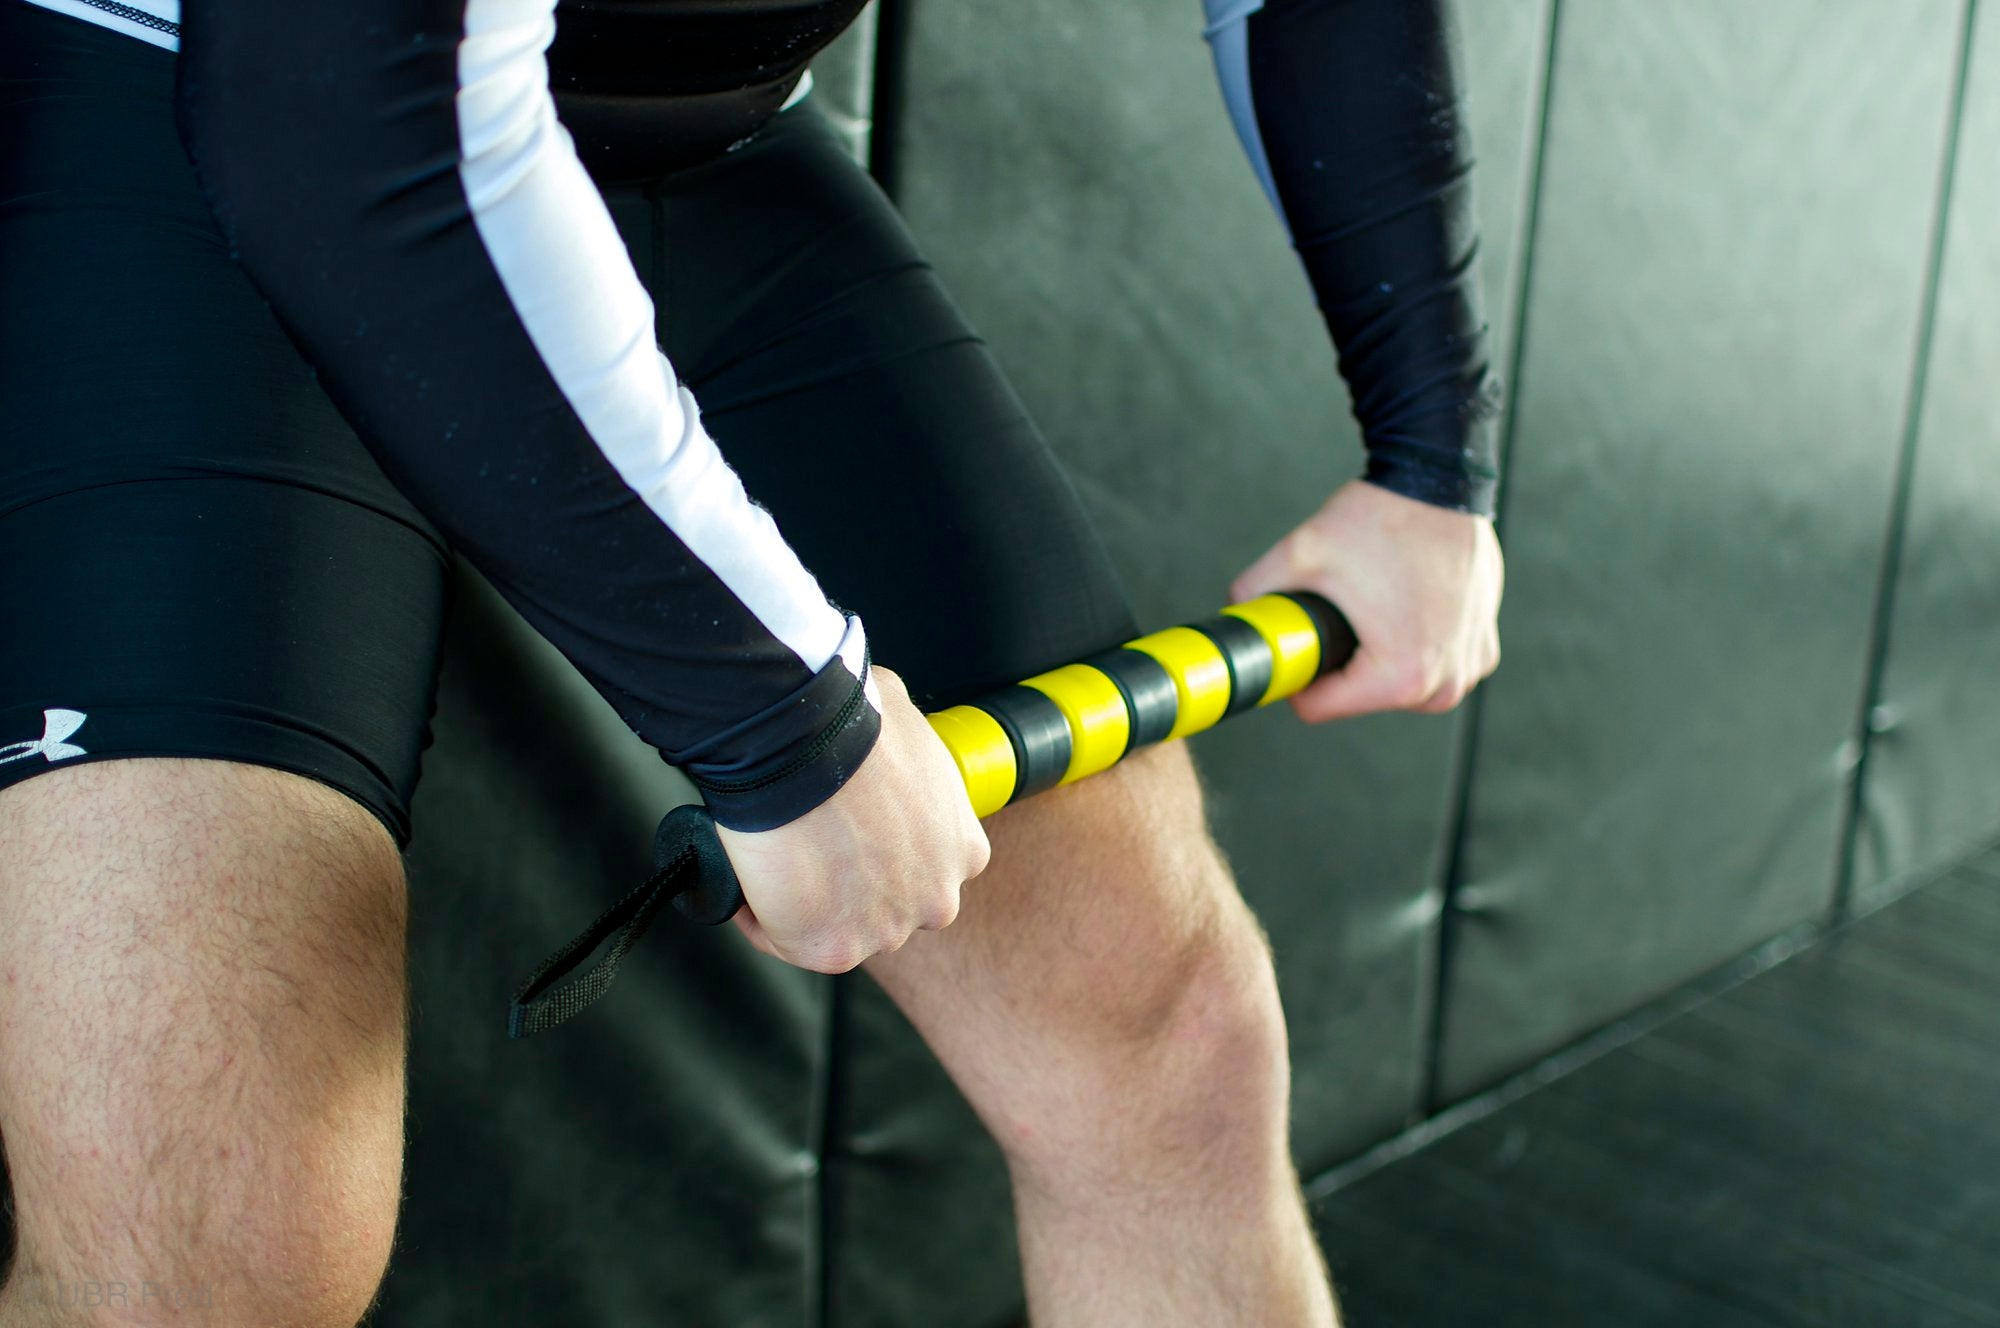 How To Use A Muscle Roller For Recovery